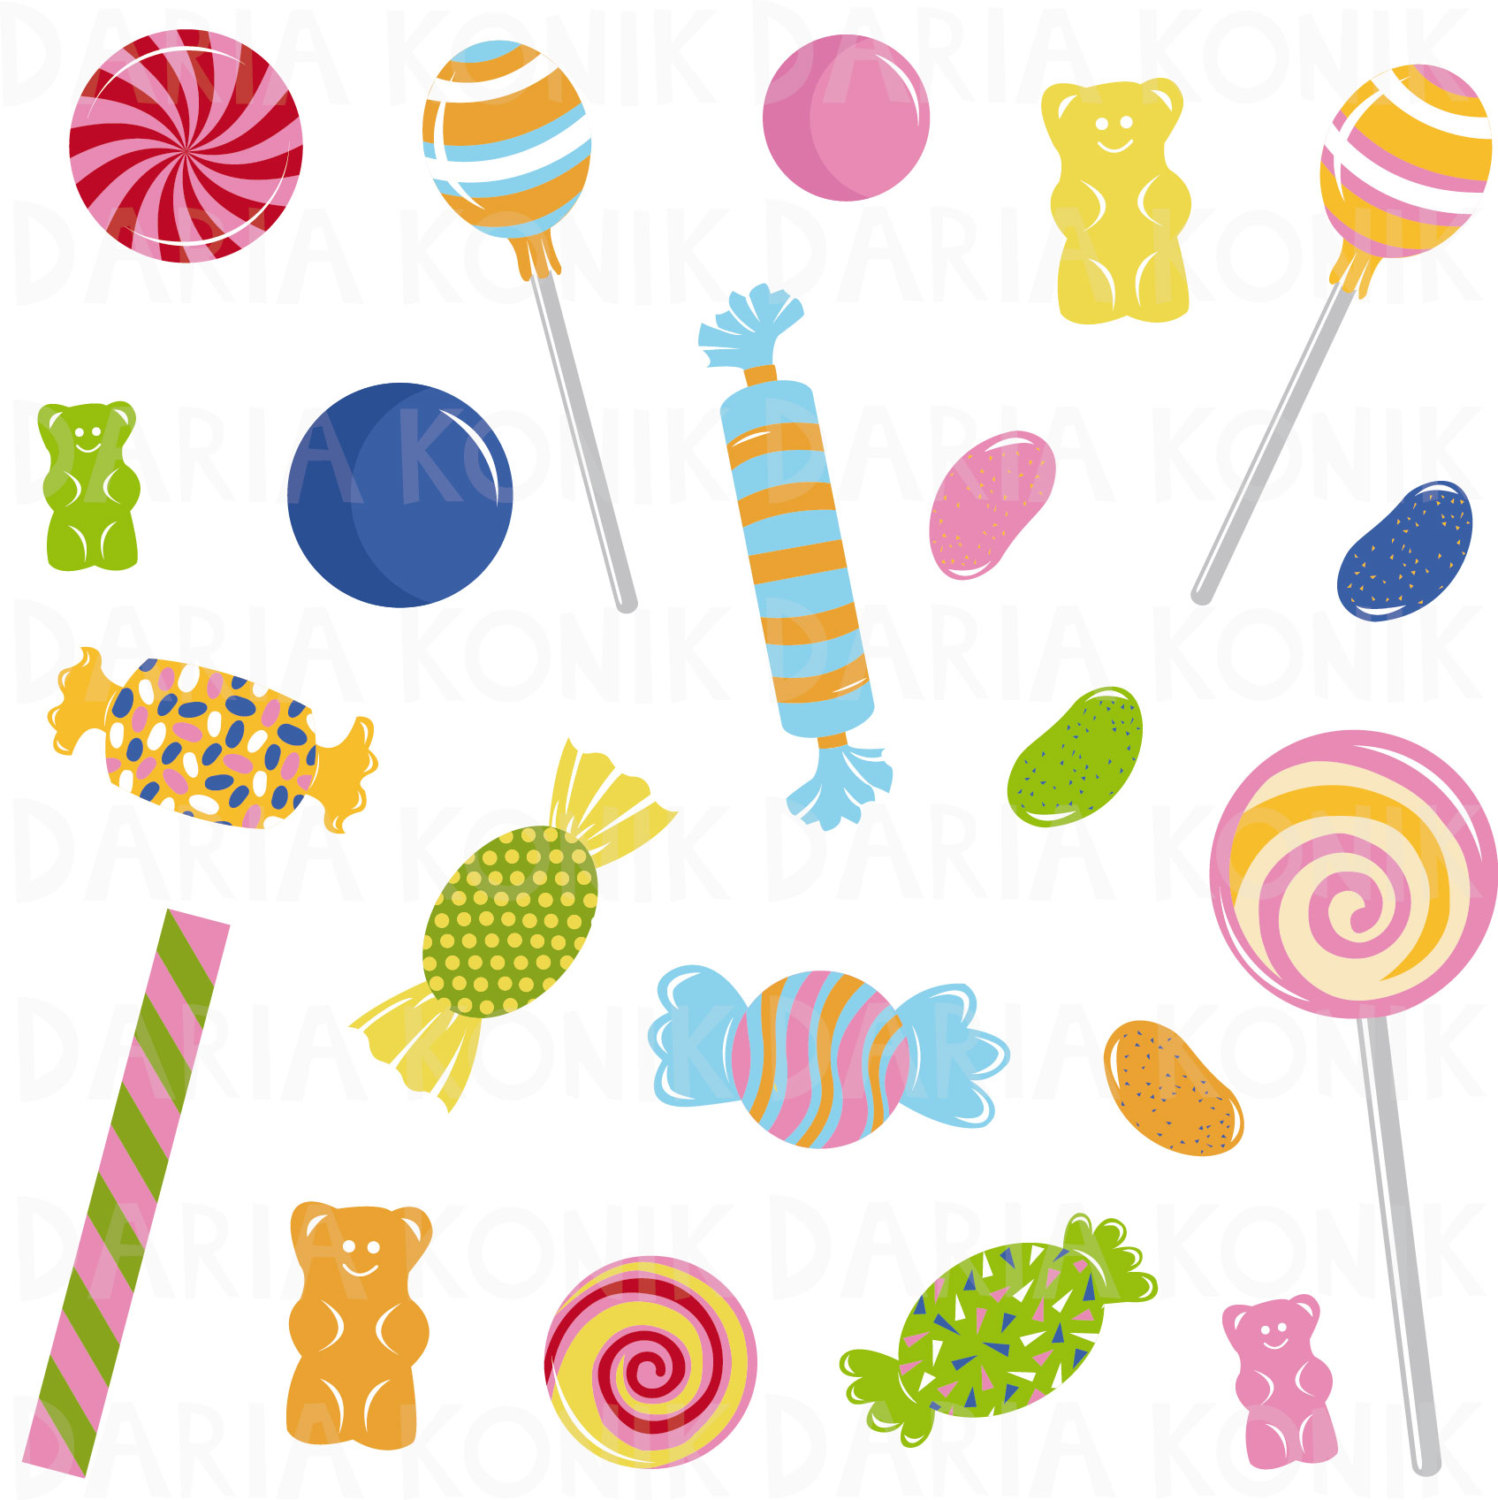 Jelly Bean clipart candy OK I Candy lollipops jelly